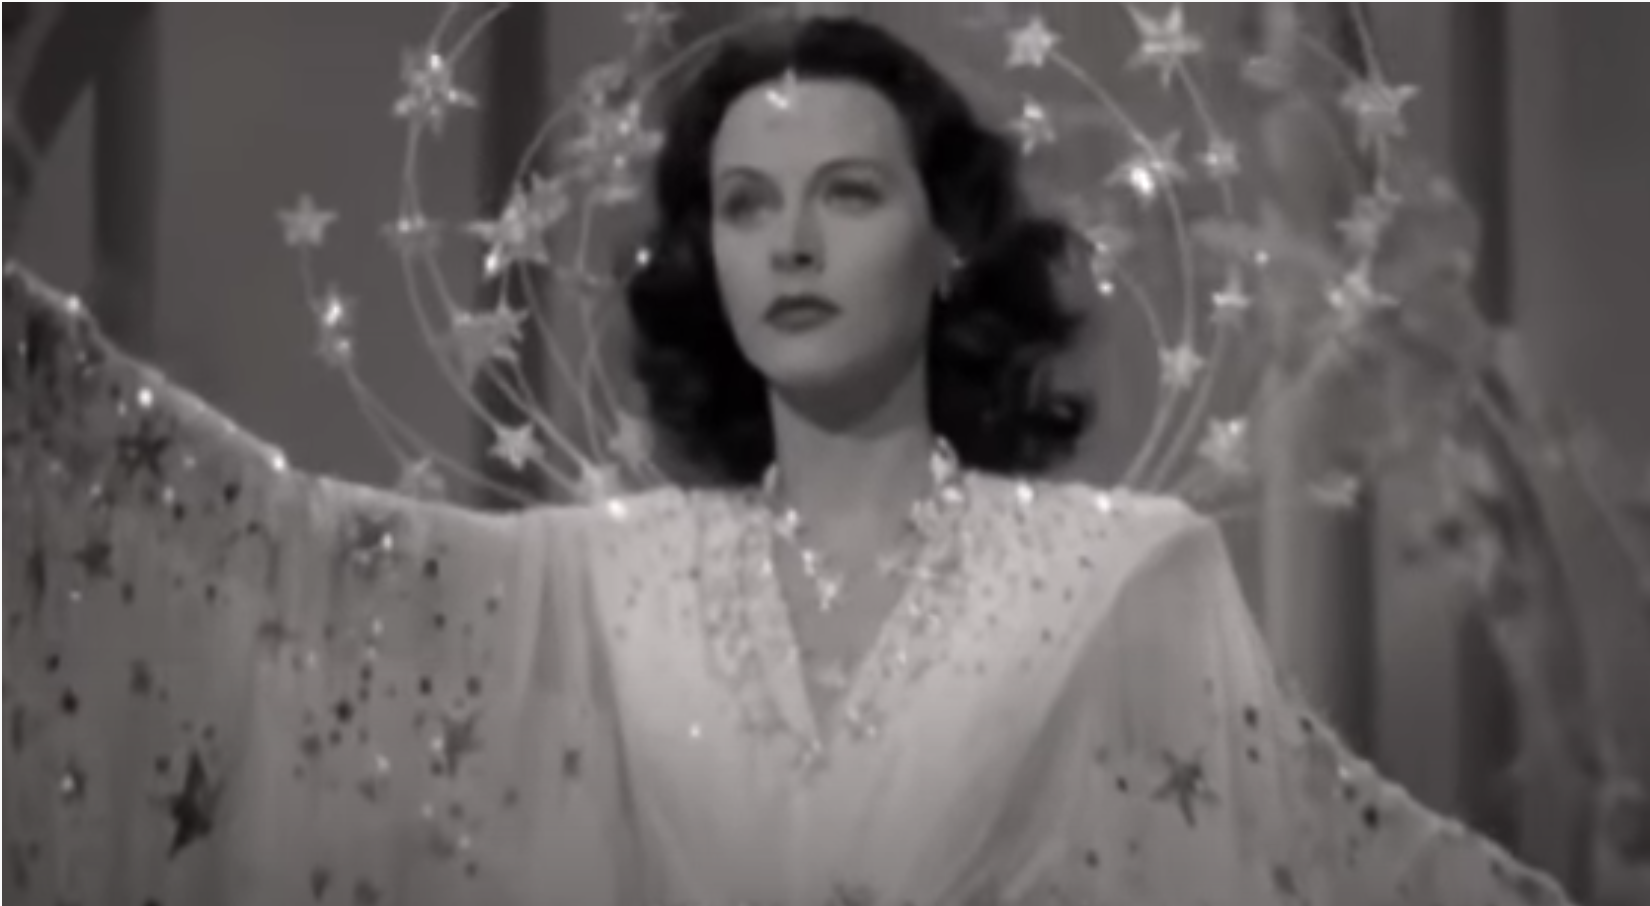 Hedy in a '40s era film